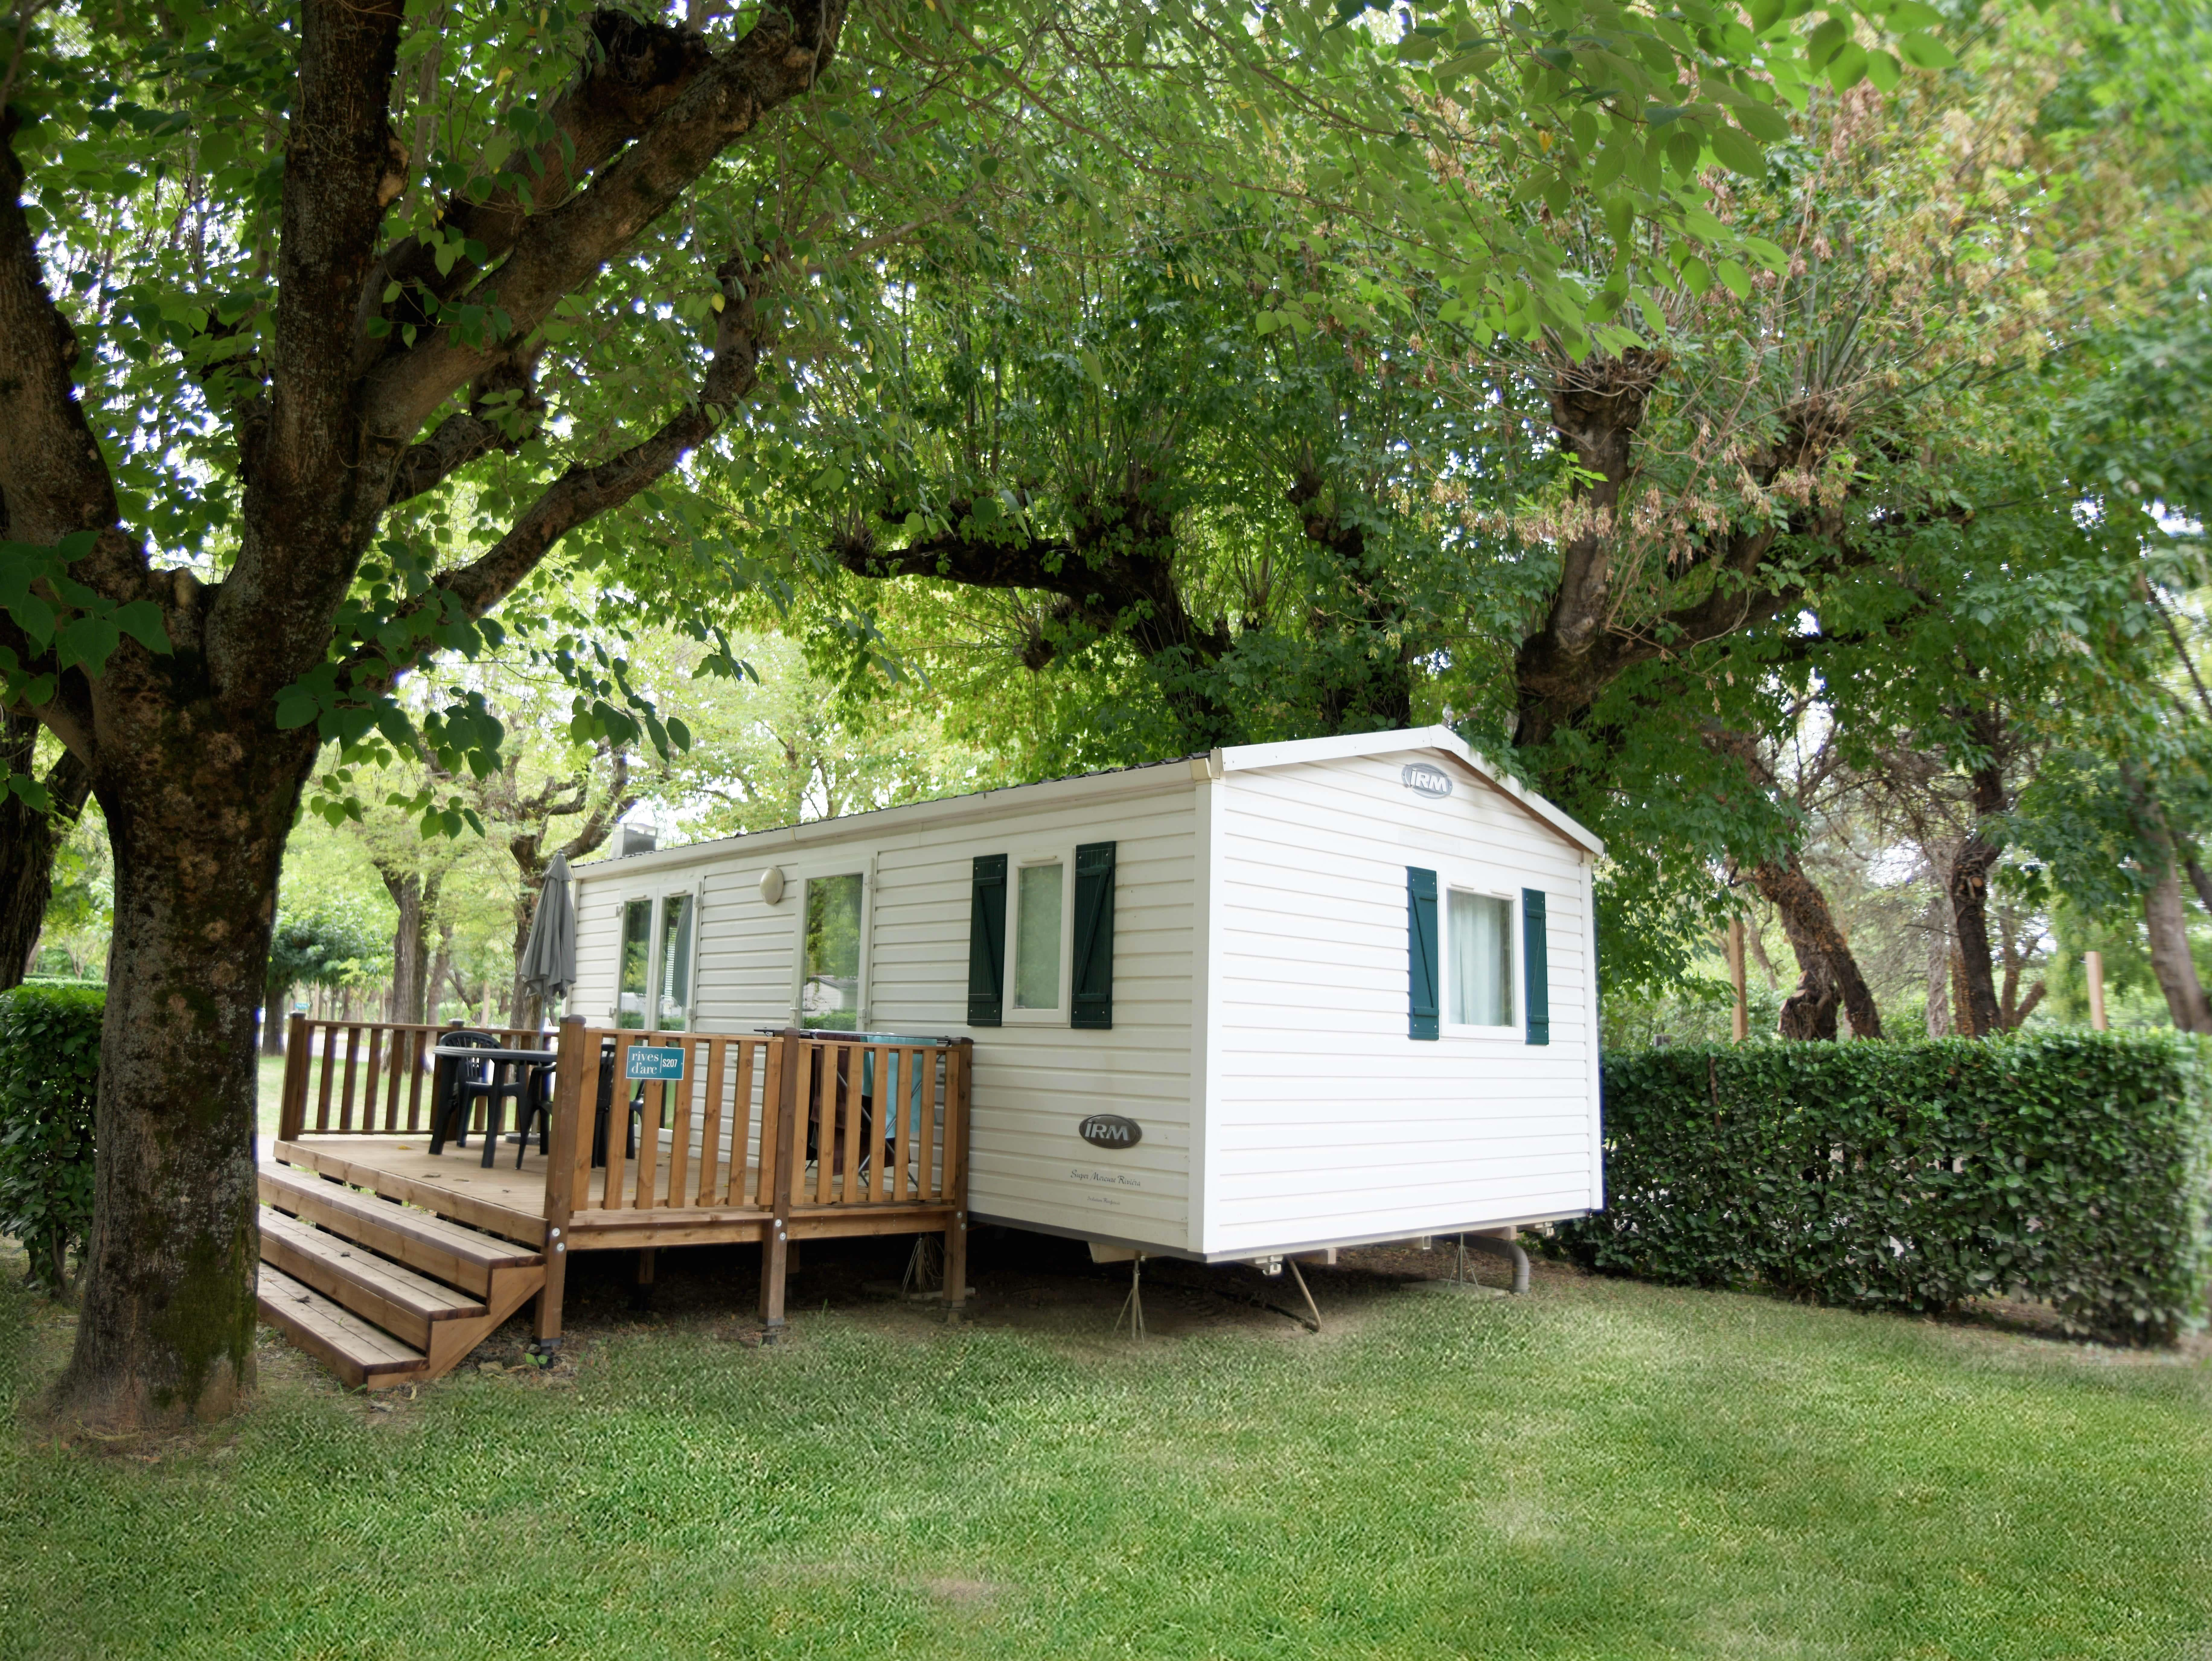 Accommodation - Our Classiques Mobile Home 32M² - Camping Rives d'Arc